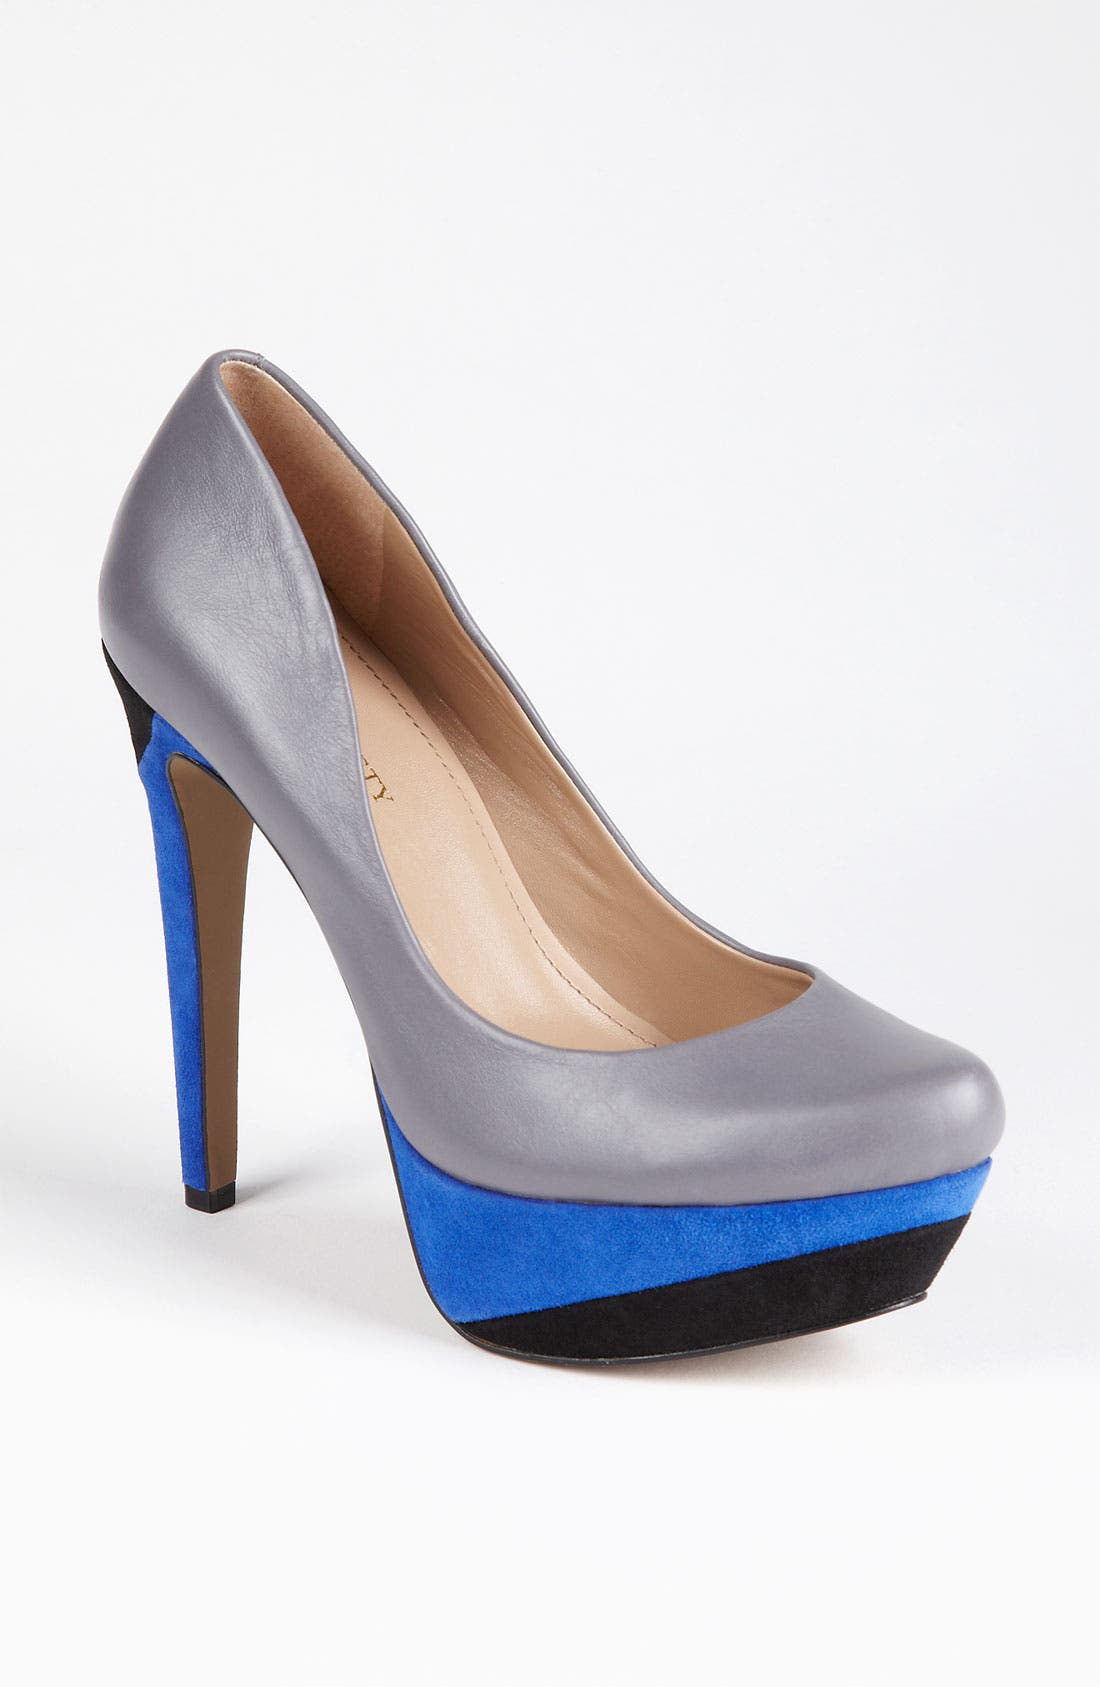 Main Image - Sole Society 'Layla' Platform Pump